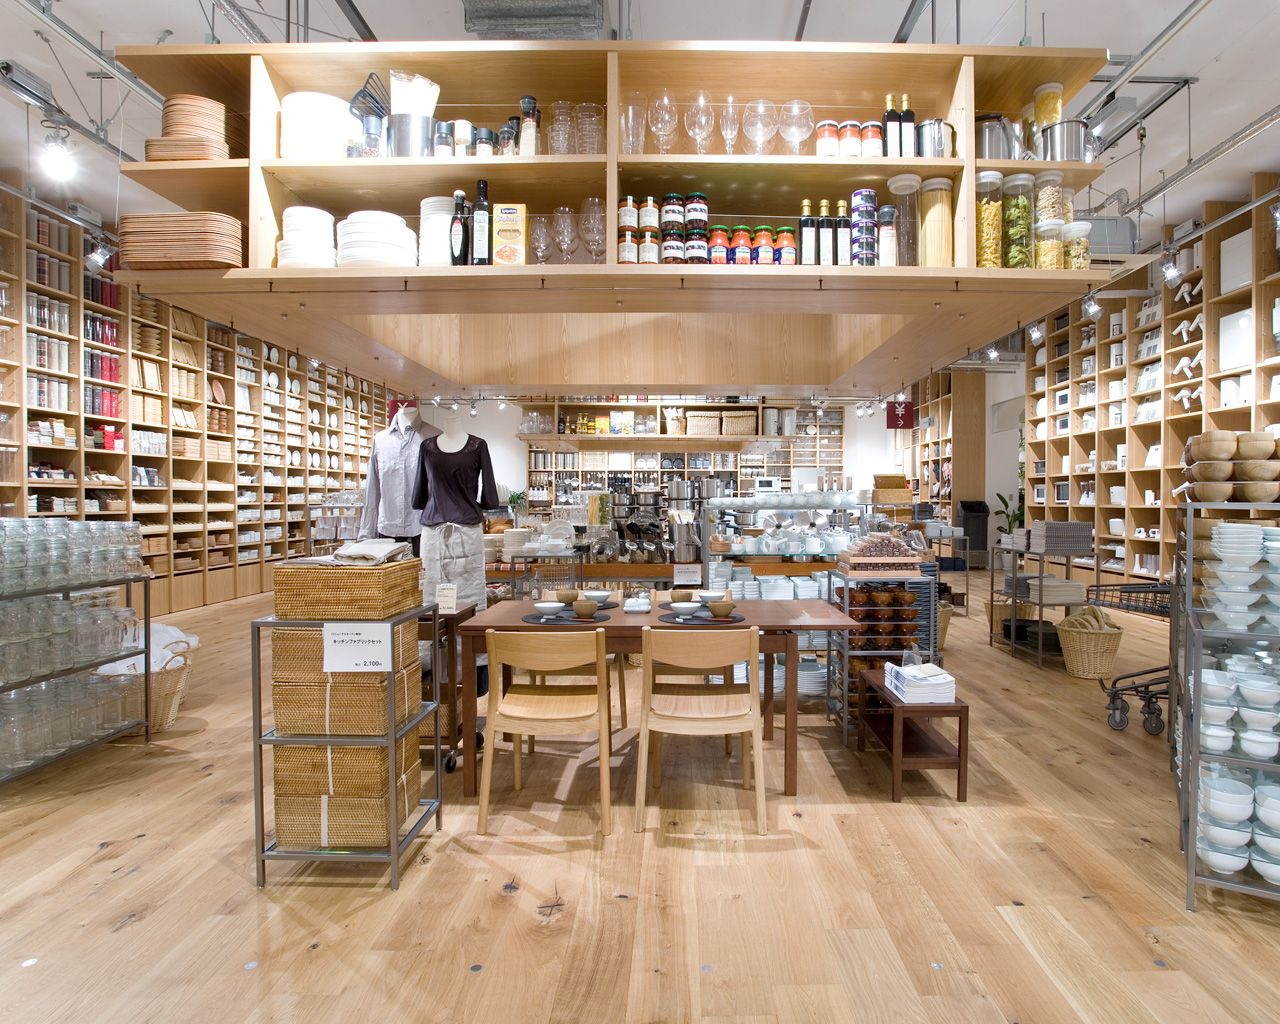 Muji finder du bla her forum des halles level 2 shop 122 paris og her - Muji forum des halles ...